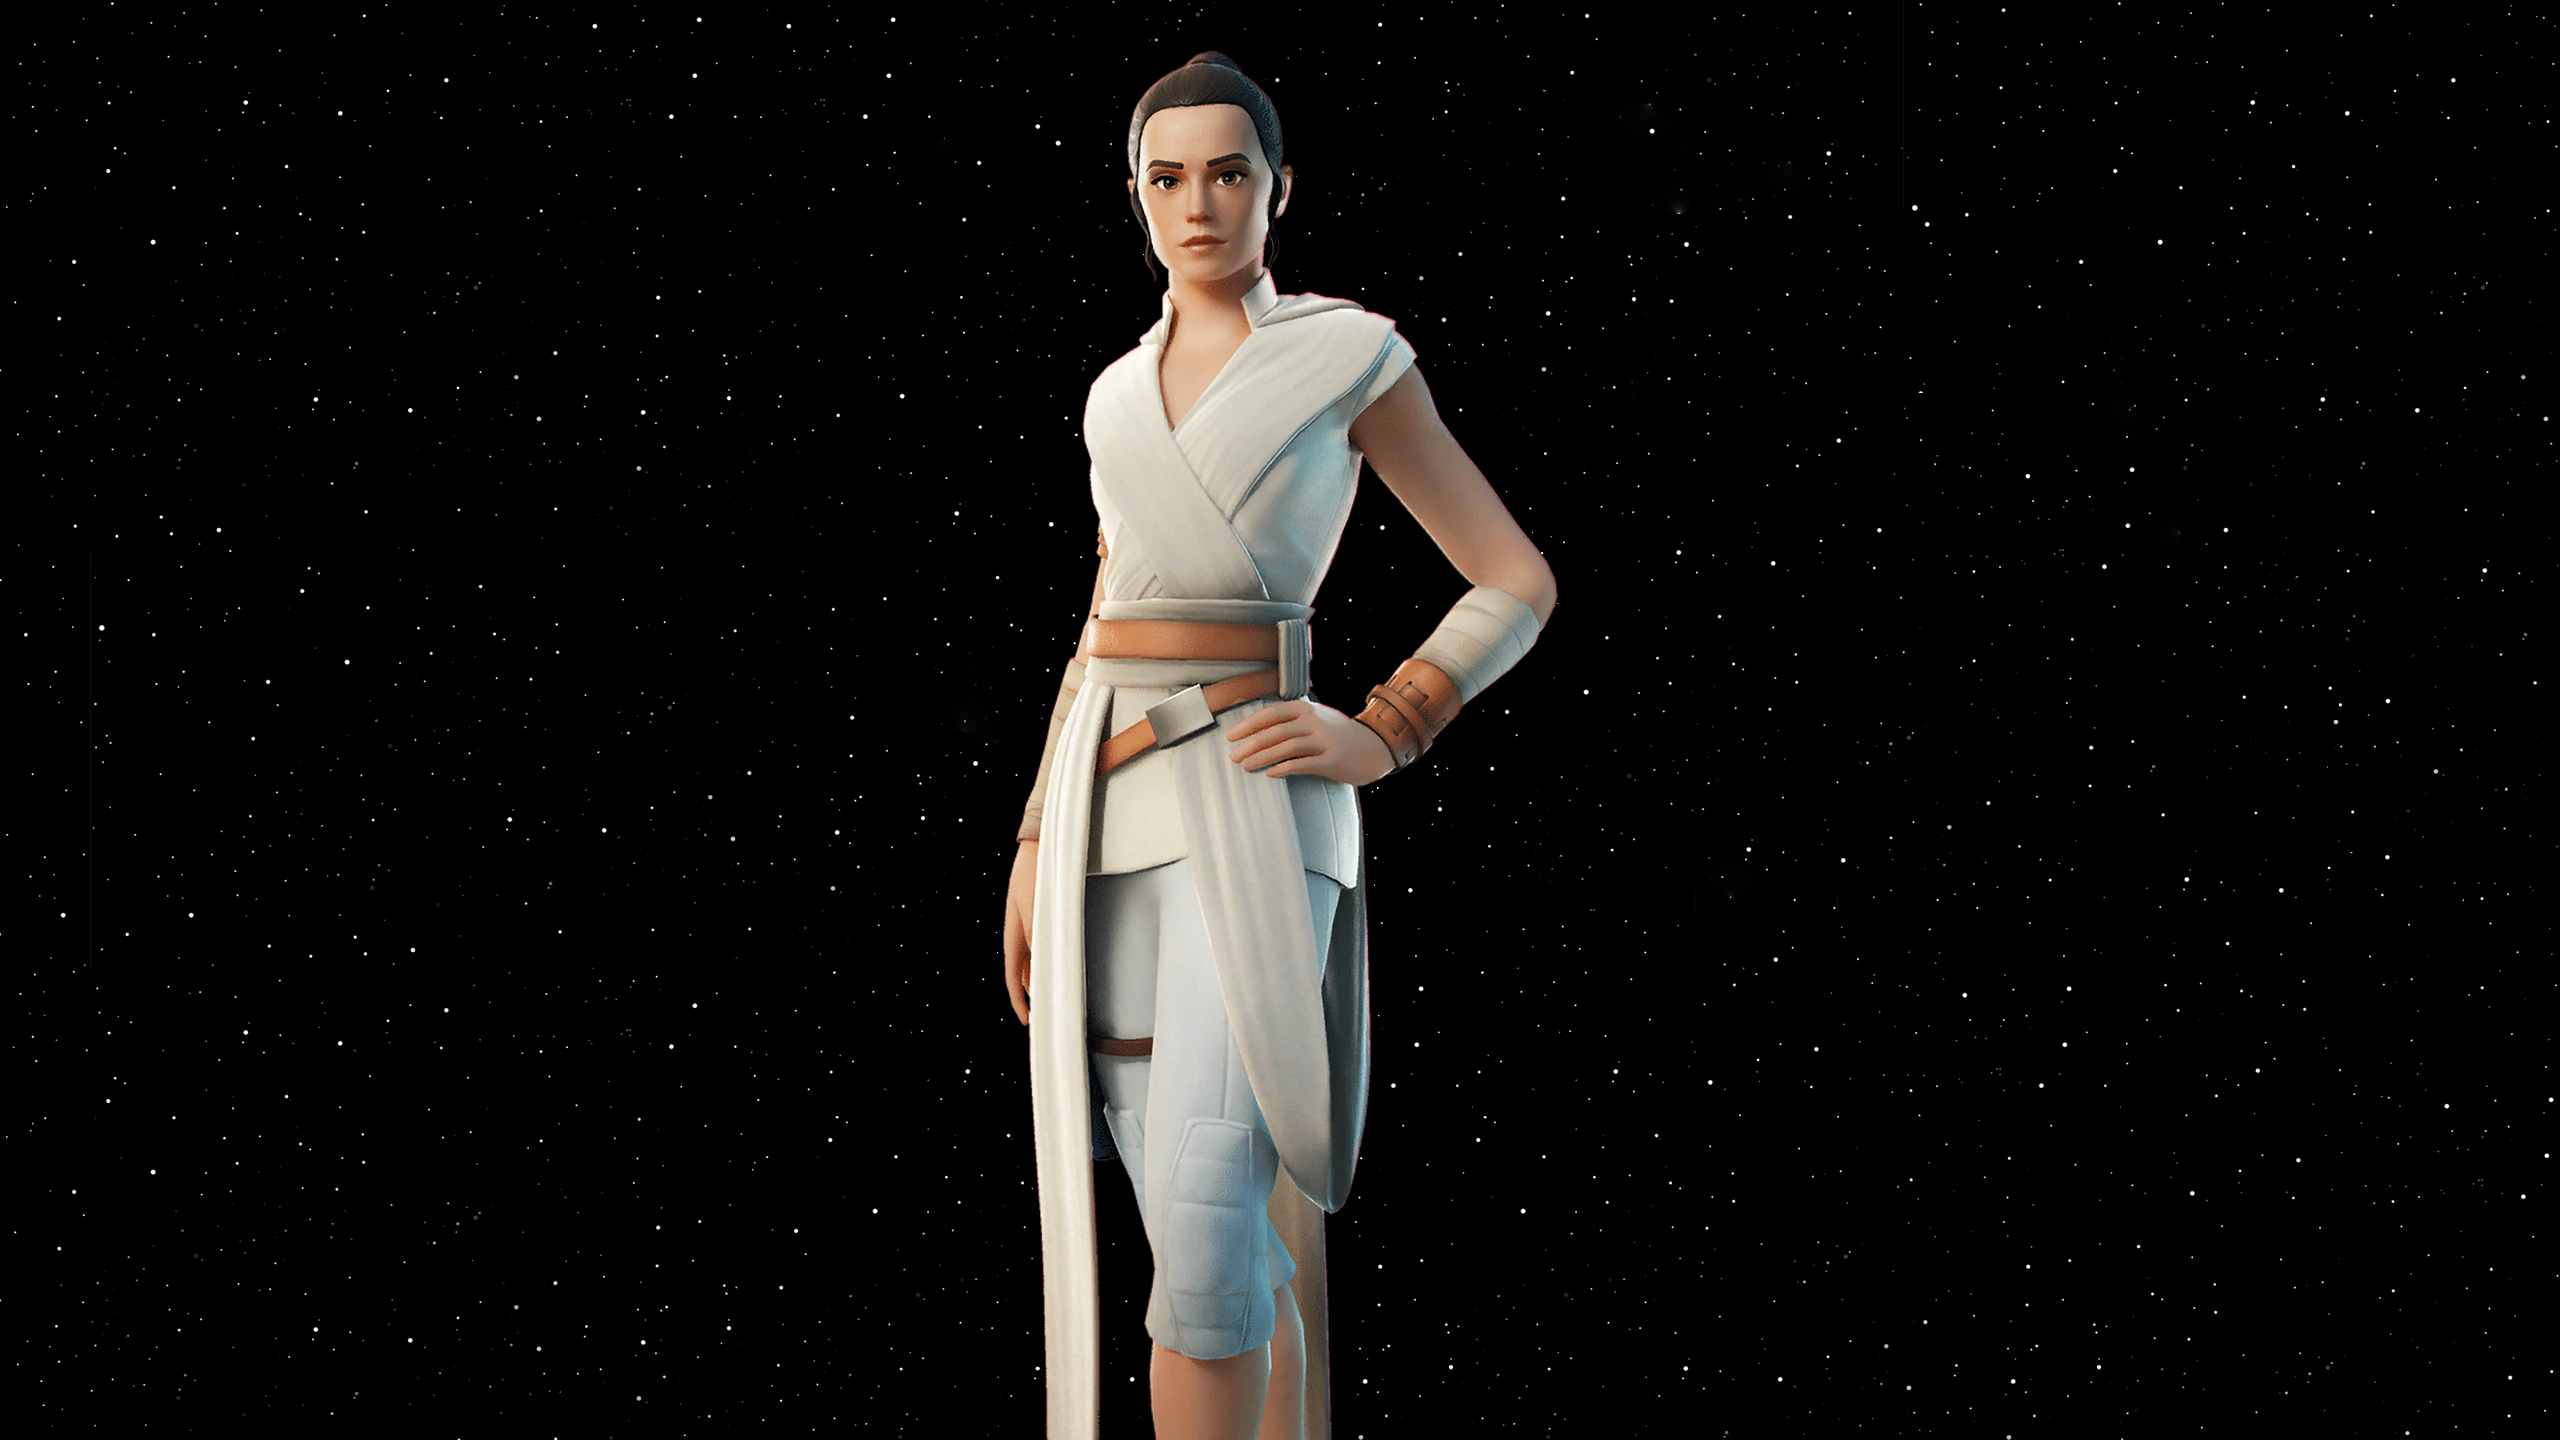 1400x1050 Fortnite Rey Skin 1400x1050 Resolution Wallpaper Hd Games 4k Wallpapers Images Photos And Background